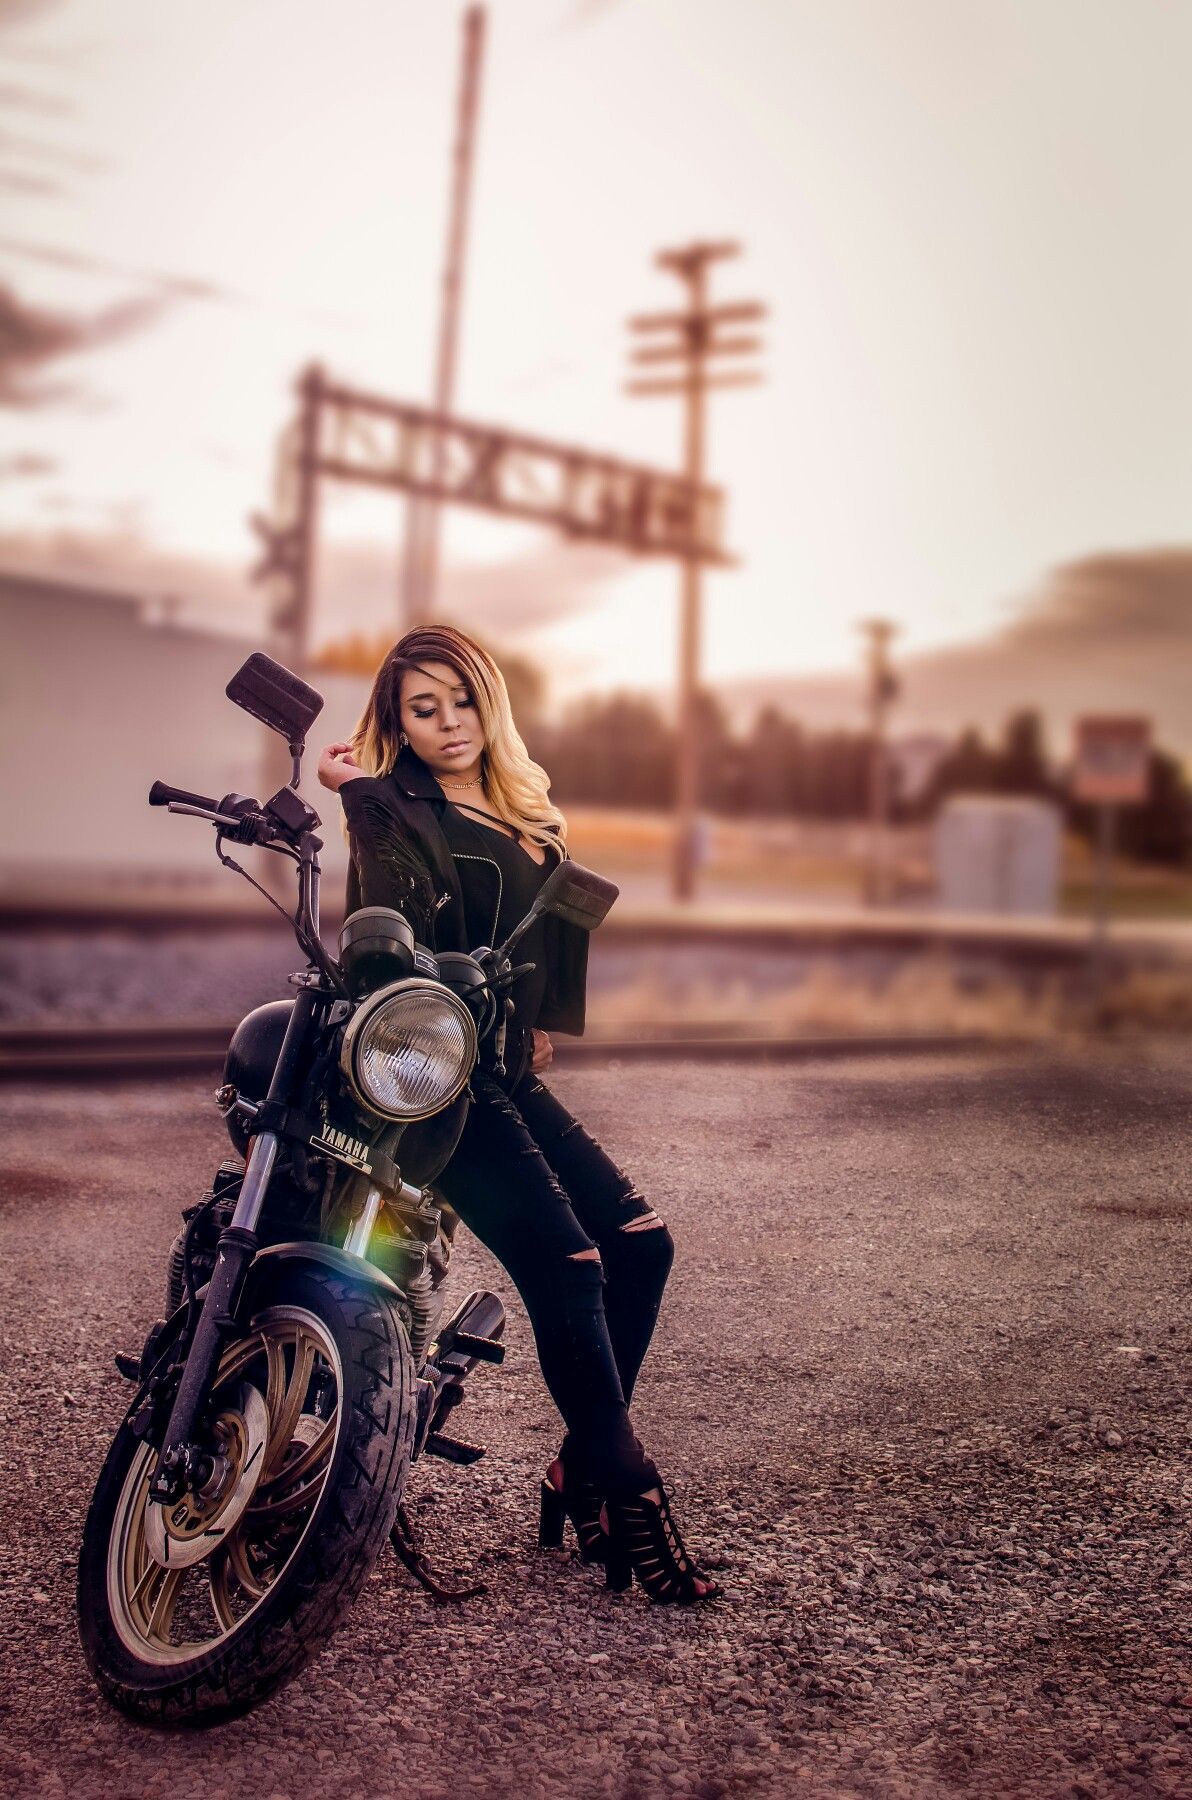 High School Senior photography pose ideas on Motorcycle #classof2017 #motorcycle #loerastudio #thebomb #beautiful #perfect